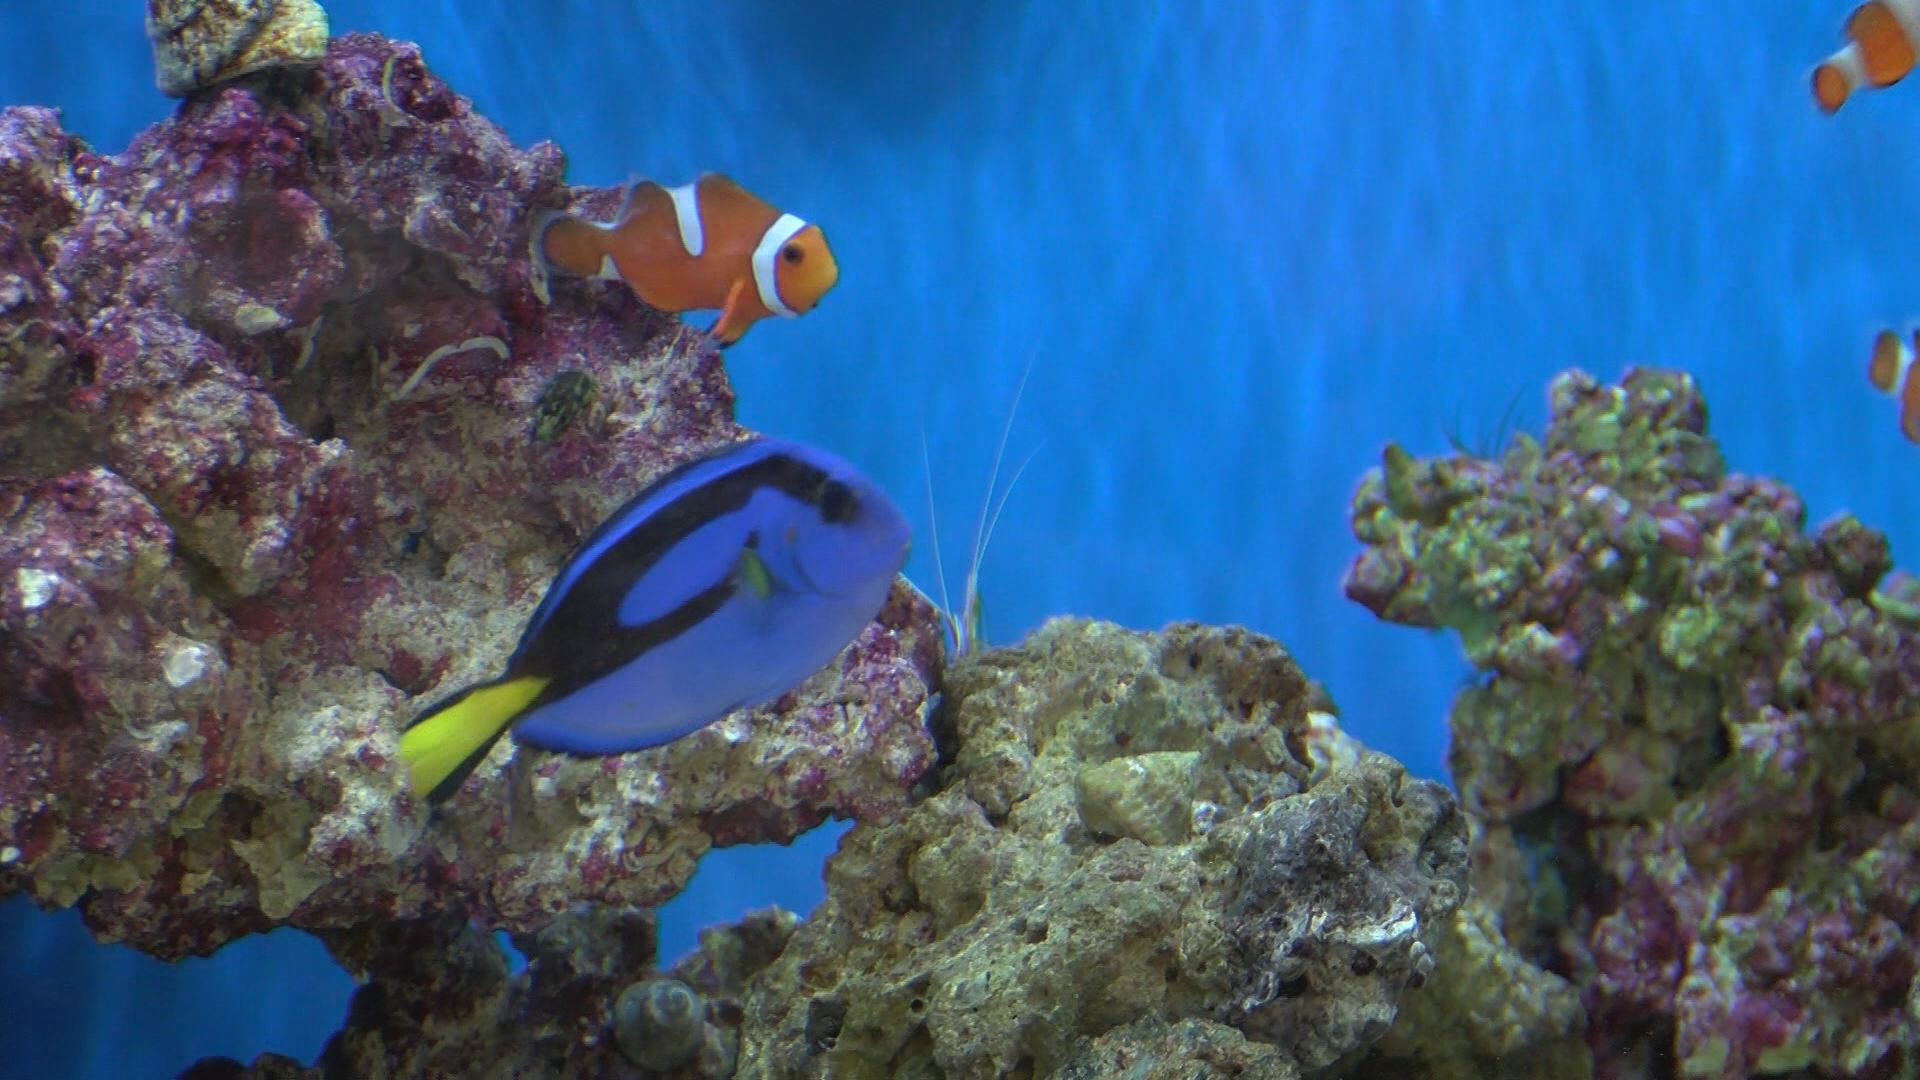 finding dory_231722